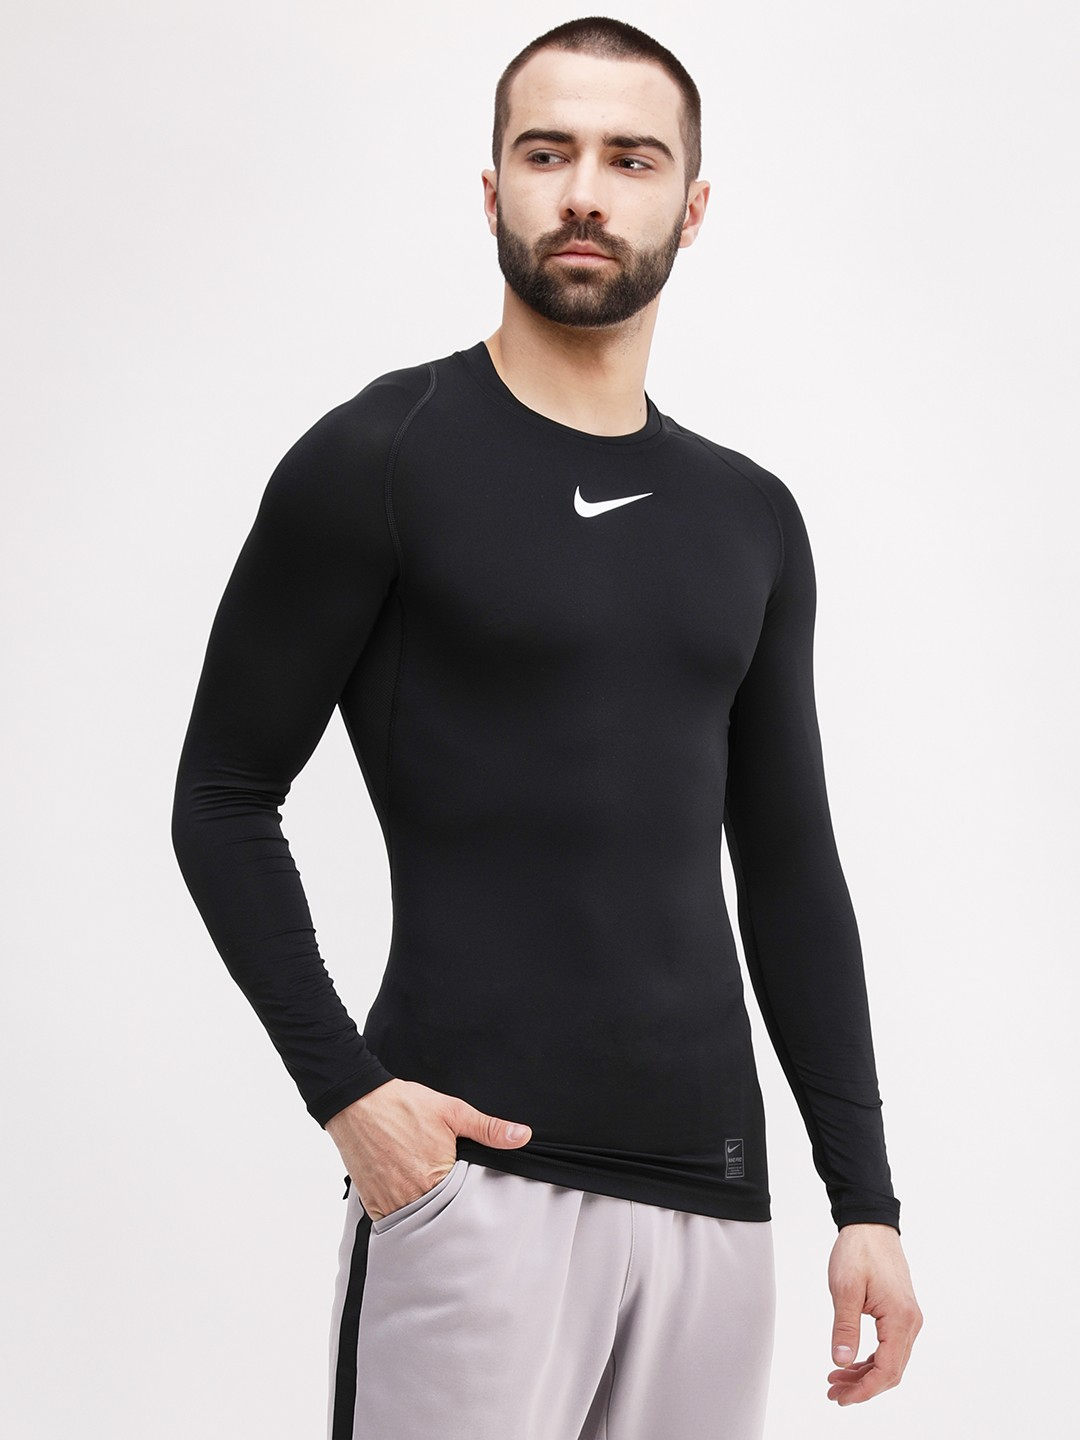 Nike Black Long Sleeve Compression T-Shirt 1